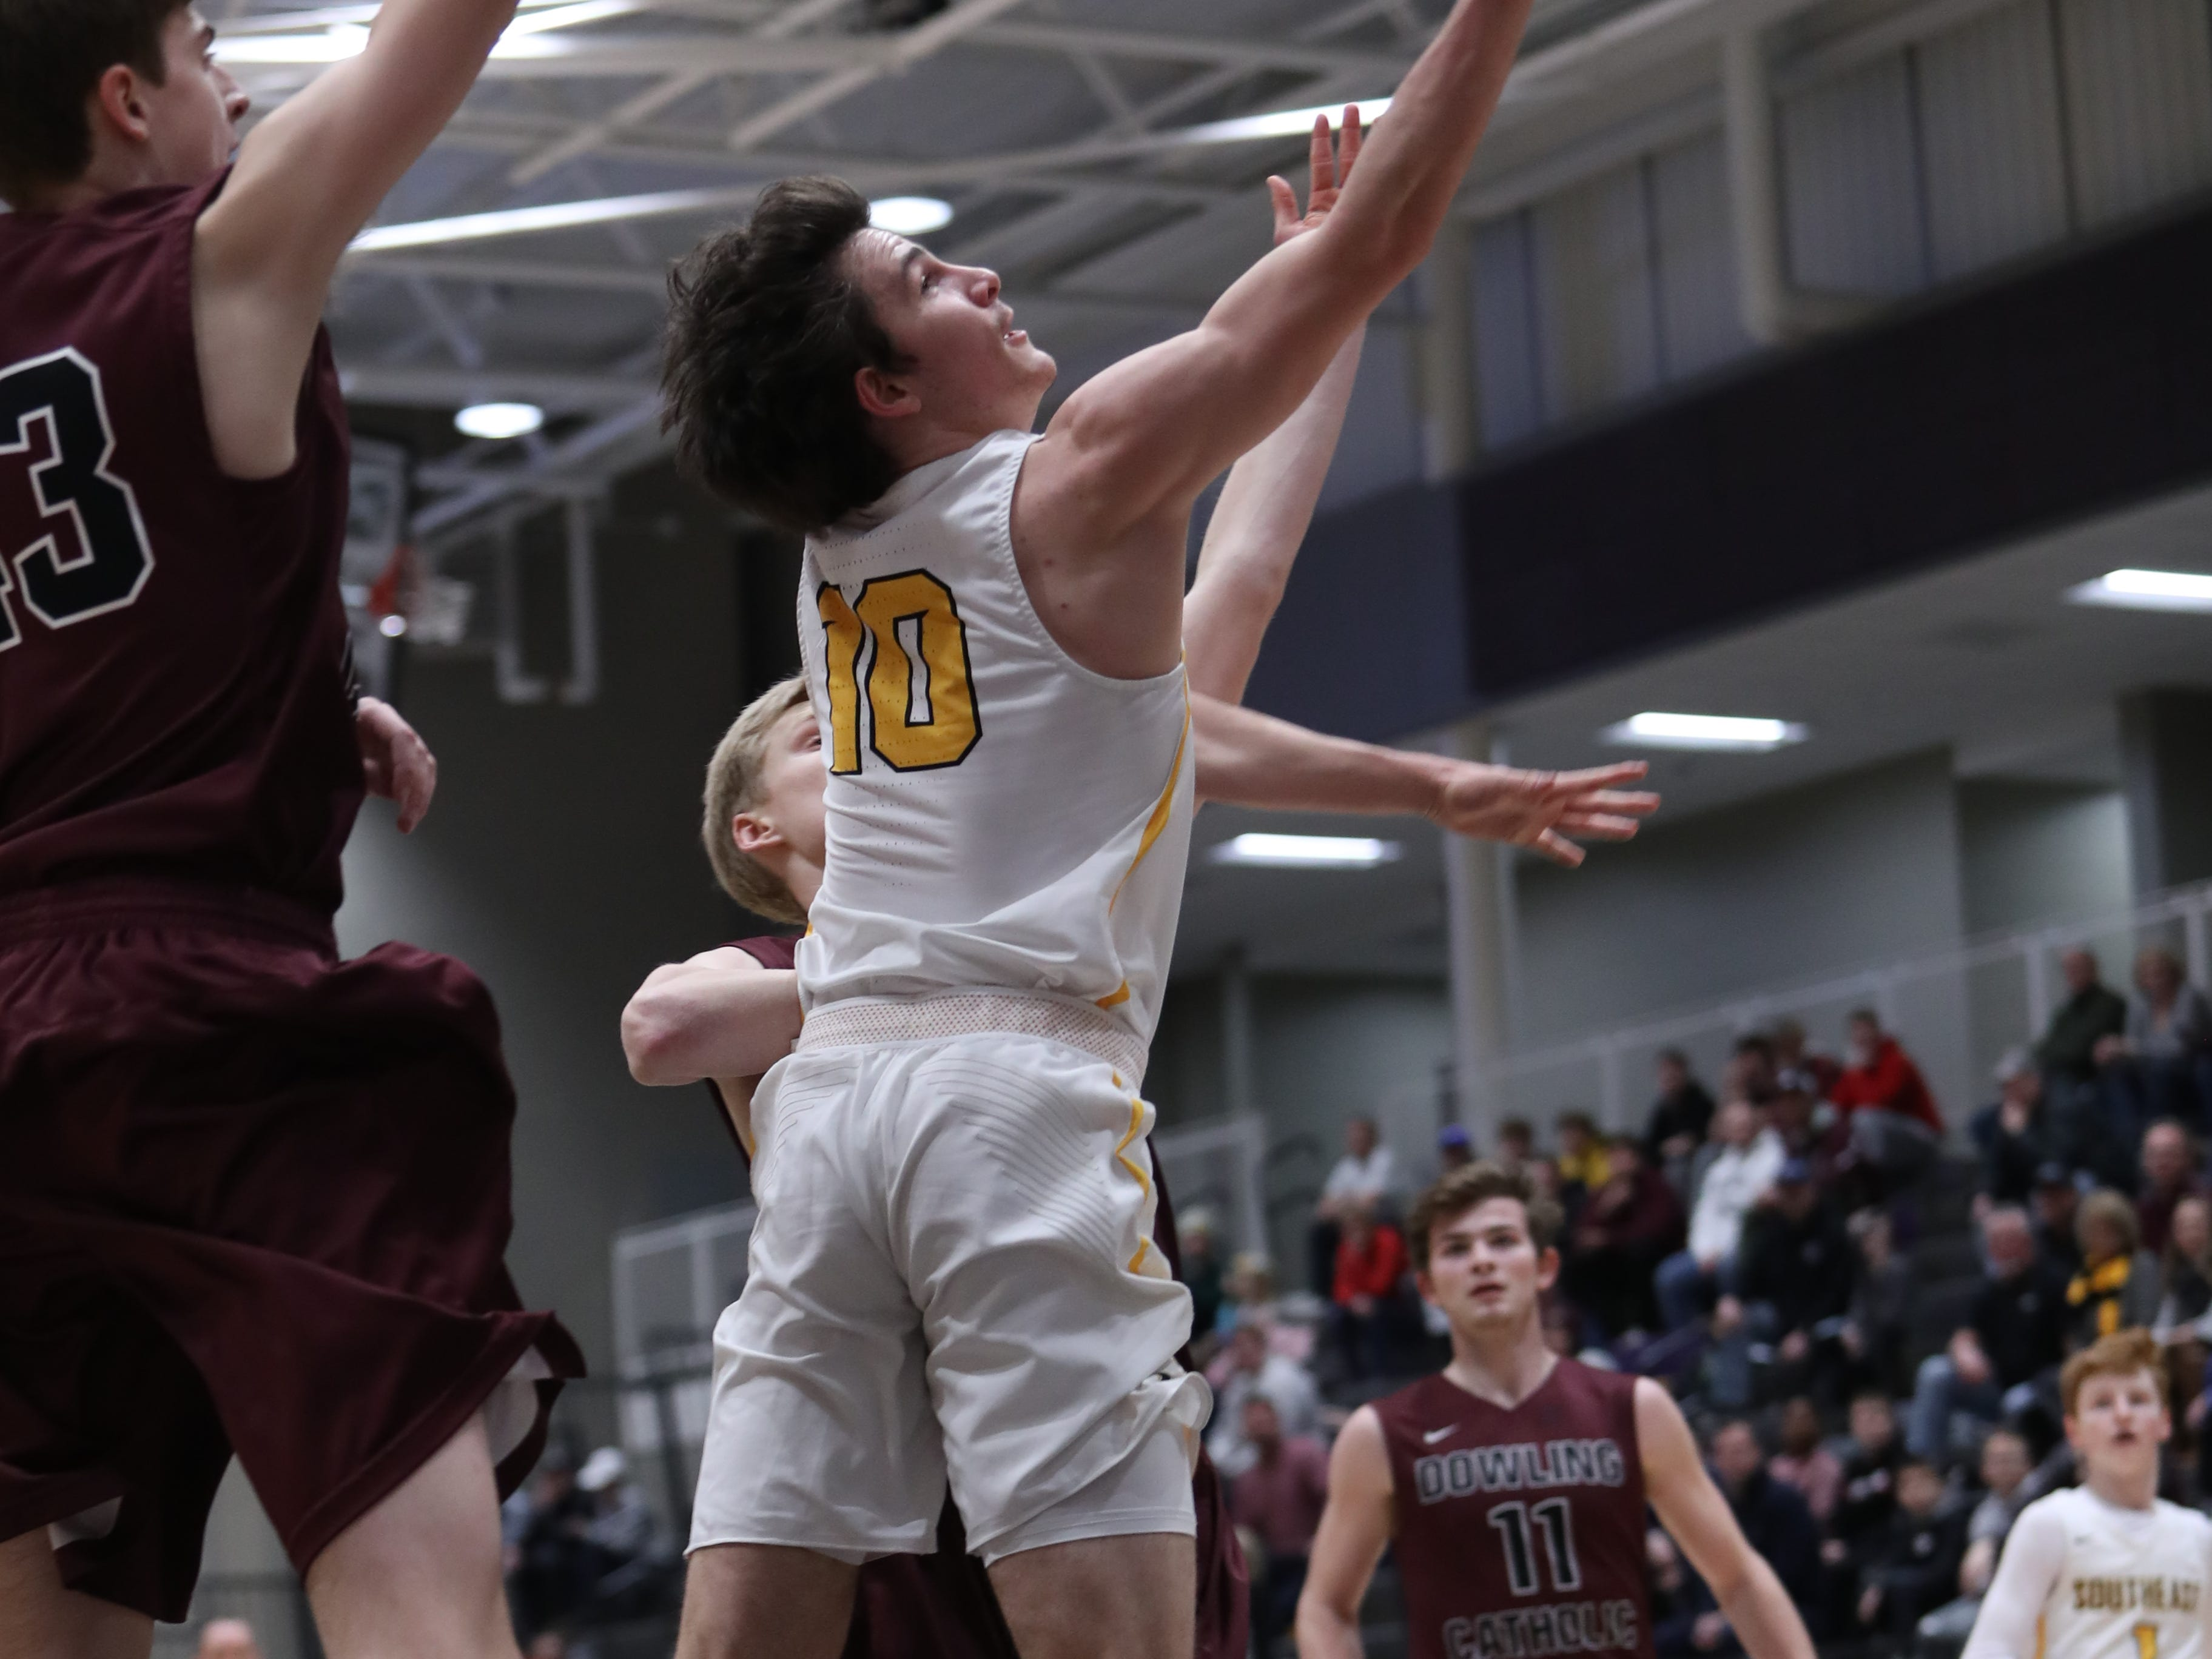 Southeast Polk's Daniel Hackbarth (10) goes back-door against Dowling Catholic during their game at Johnston High School in Johnston, Iowa, on Tuesday, Feb. 26, 2019. Dowling won the game 44-40 to advance to state.